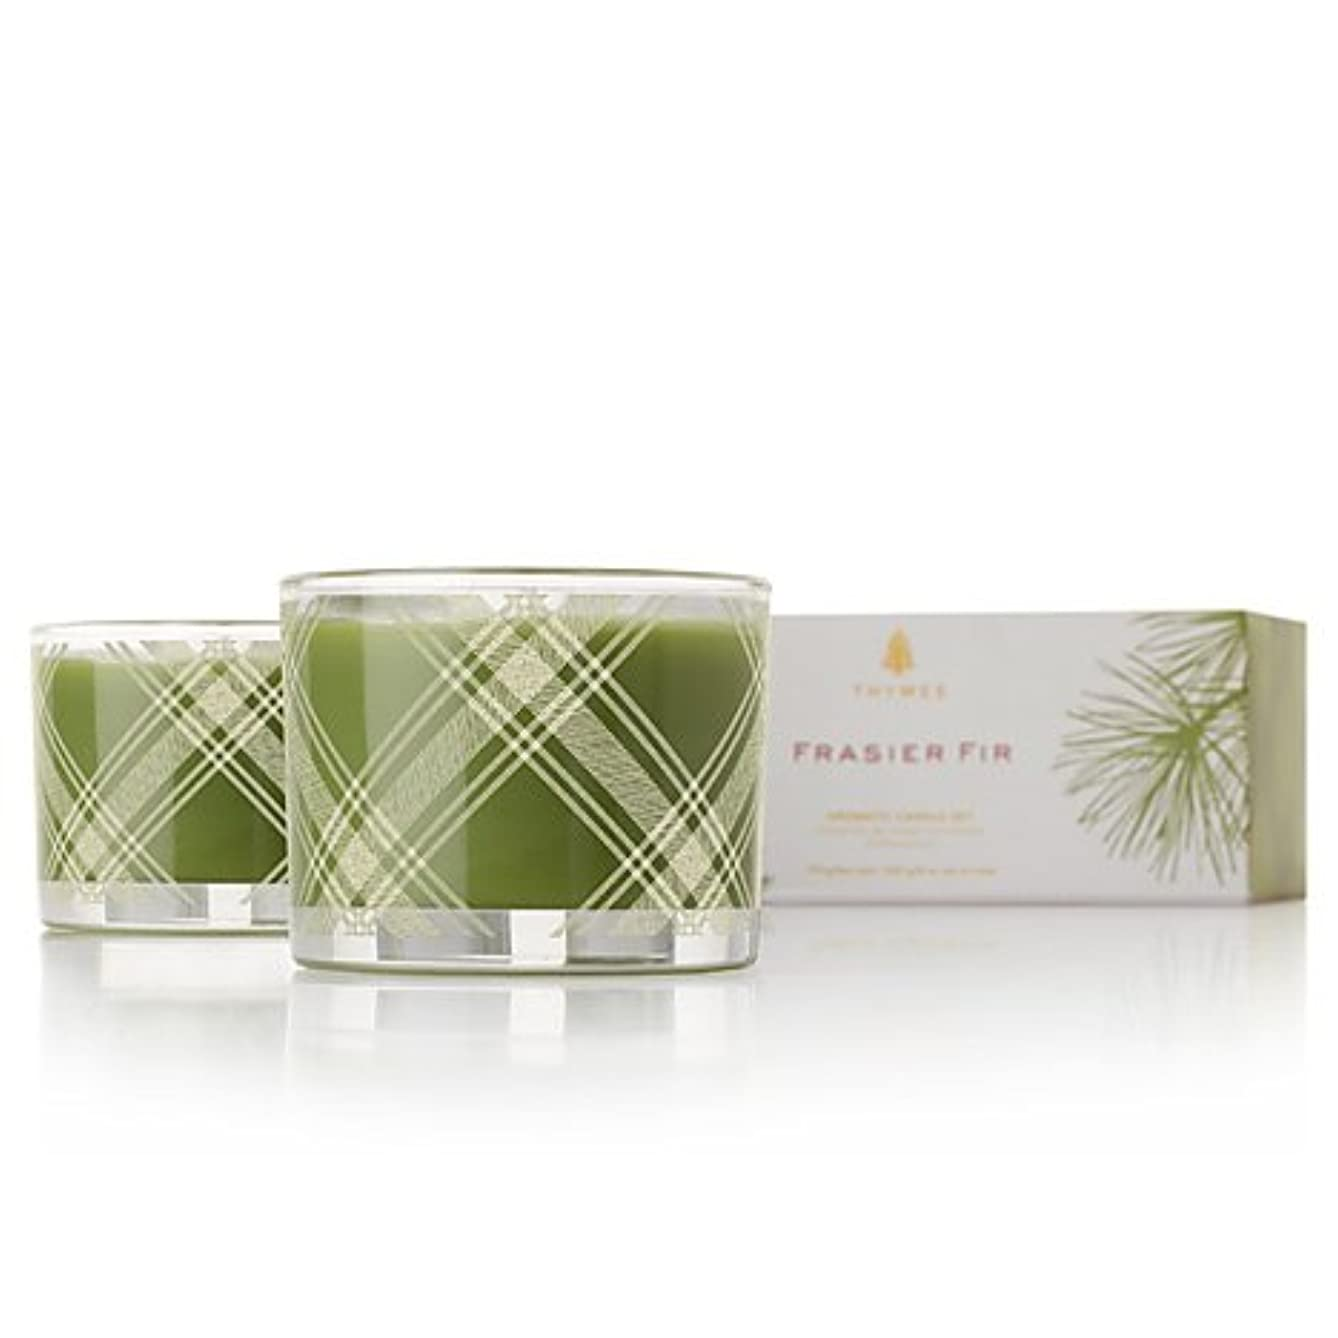 言語学太字制限Thymes Frasier Fir Aromatic Poured Candle Set 2 x 3.75 oz by Thymes